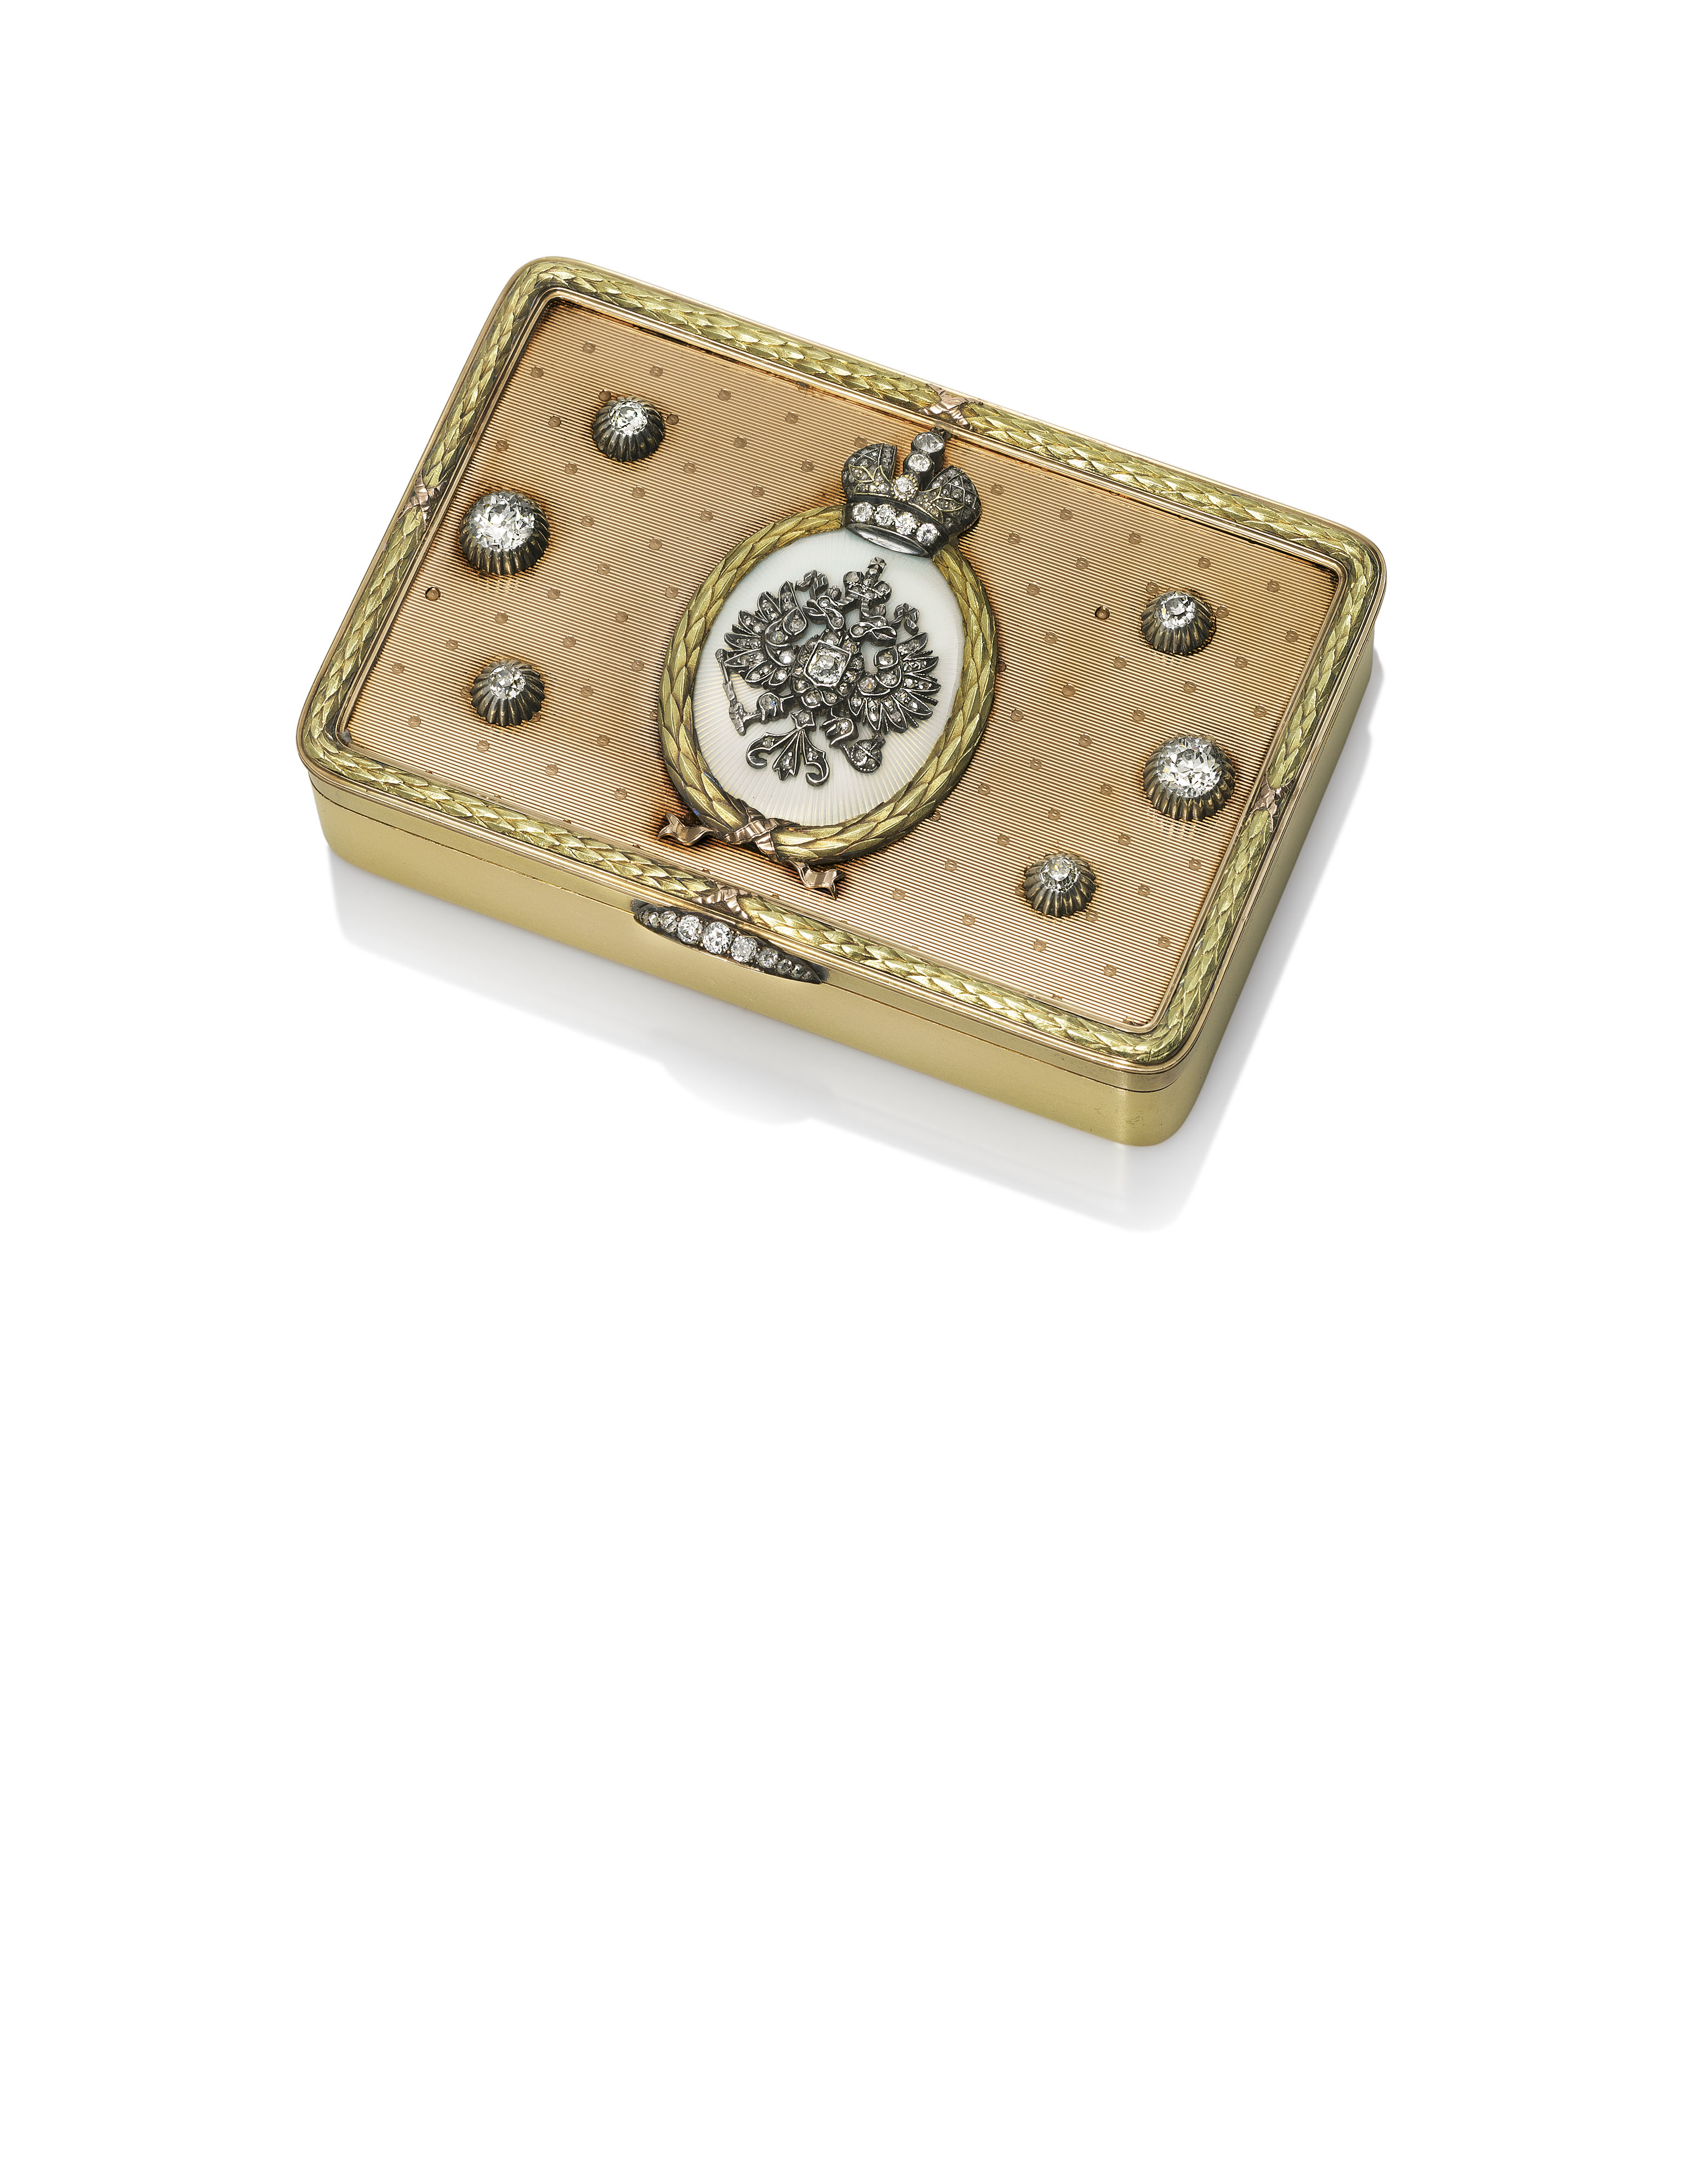 A JEWELLED GUILLOCHÉ ENAMEL AND TWO-COLOUR GOLD IMPERIAL PRESENTATION SNUFF-BOX